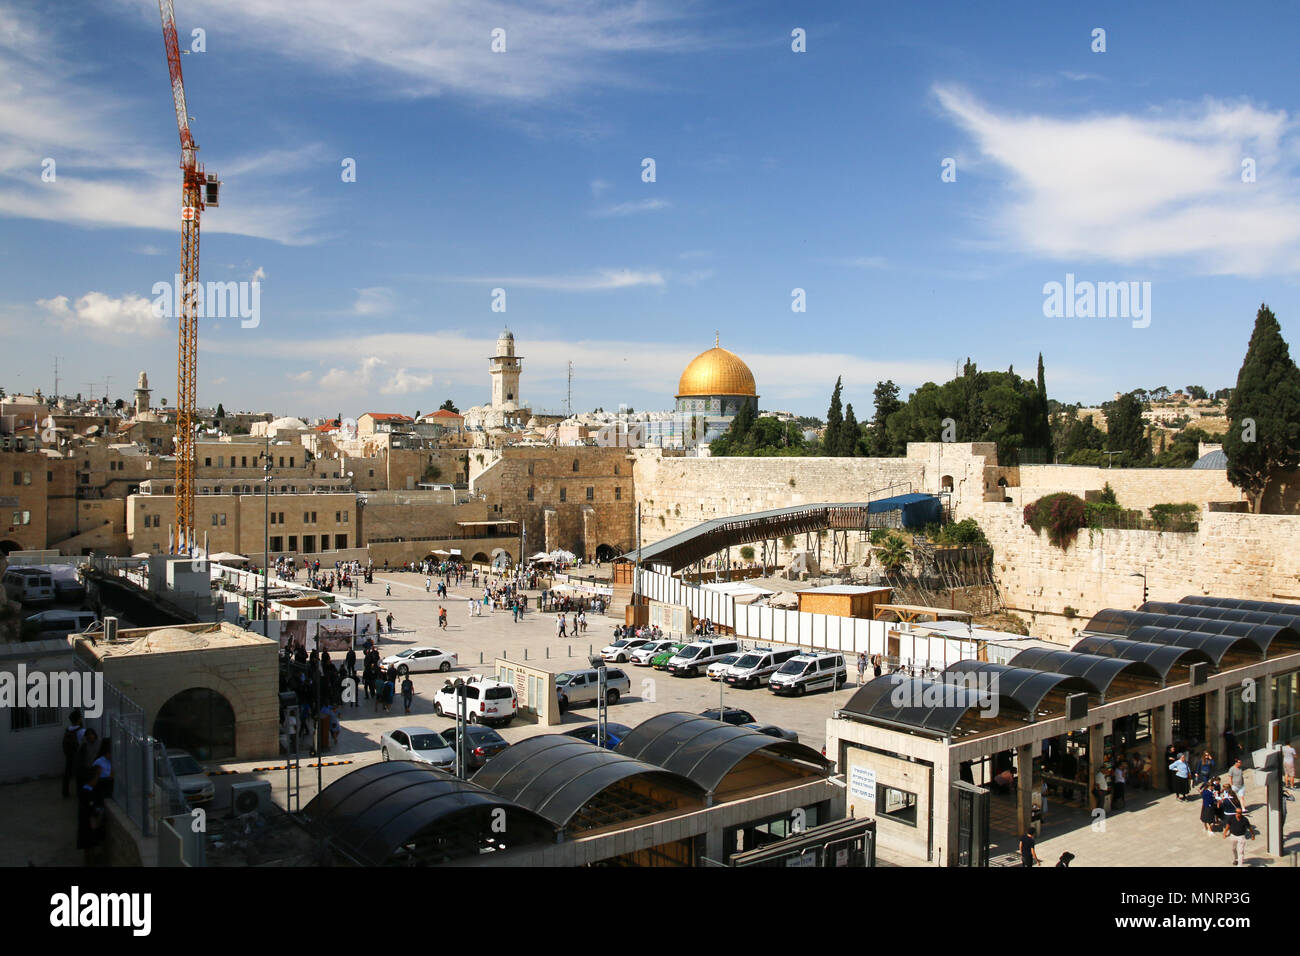 Jerusalem, Israel - May 16, 2018: View of the Wailing Wall in Jerusalem with the Dome of the Rock in the background, Israel. - Stock Image